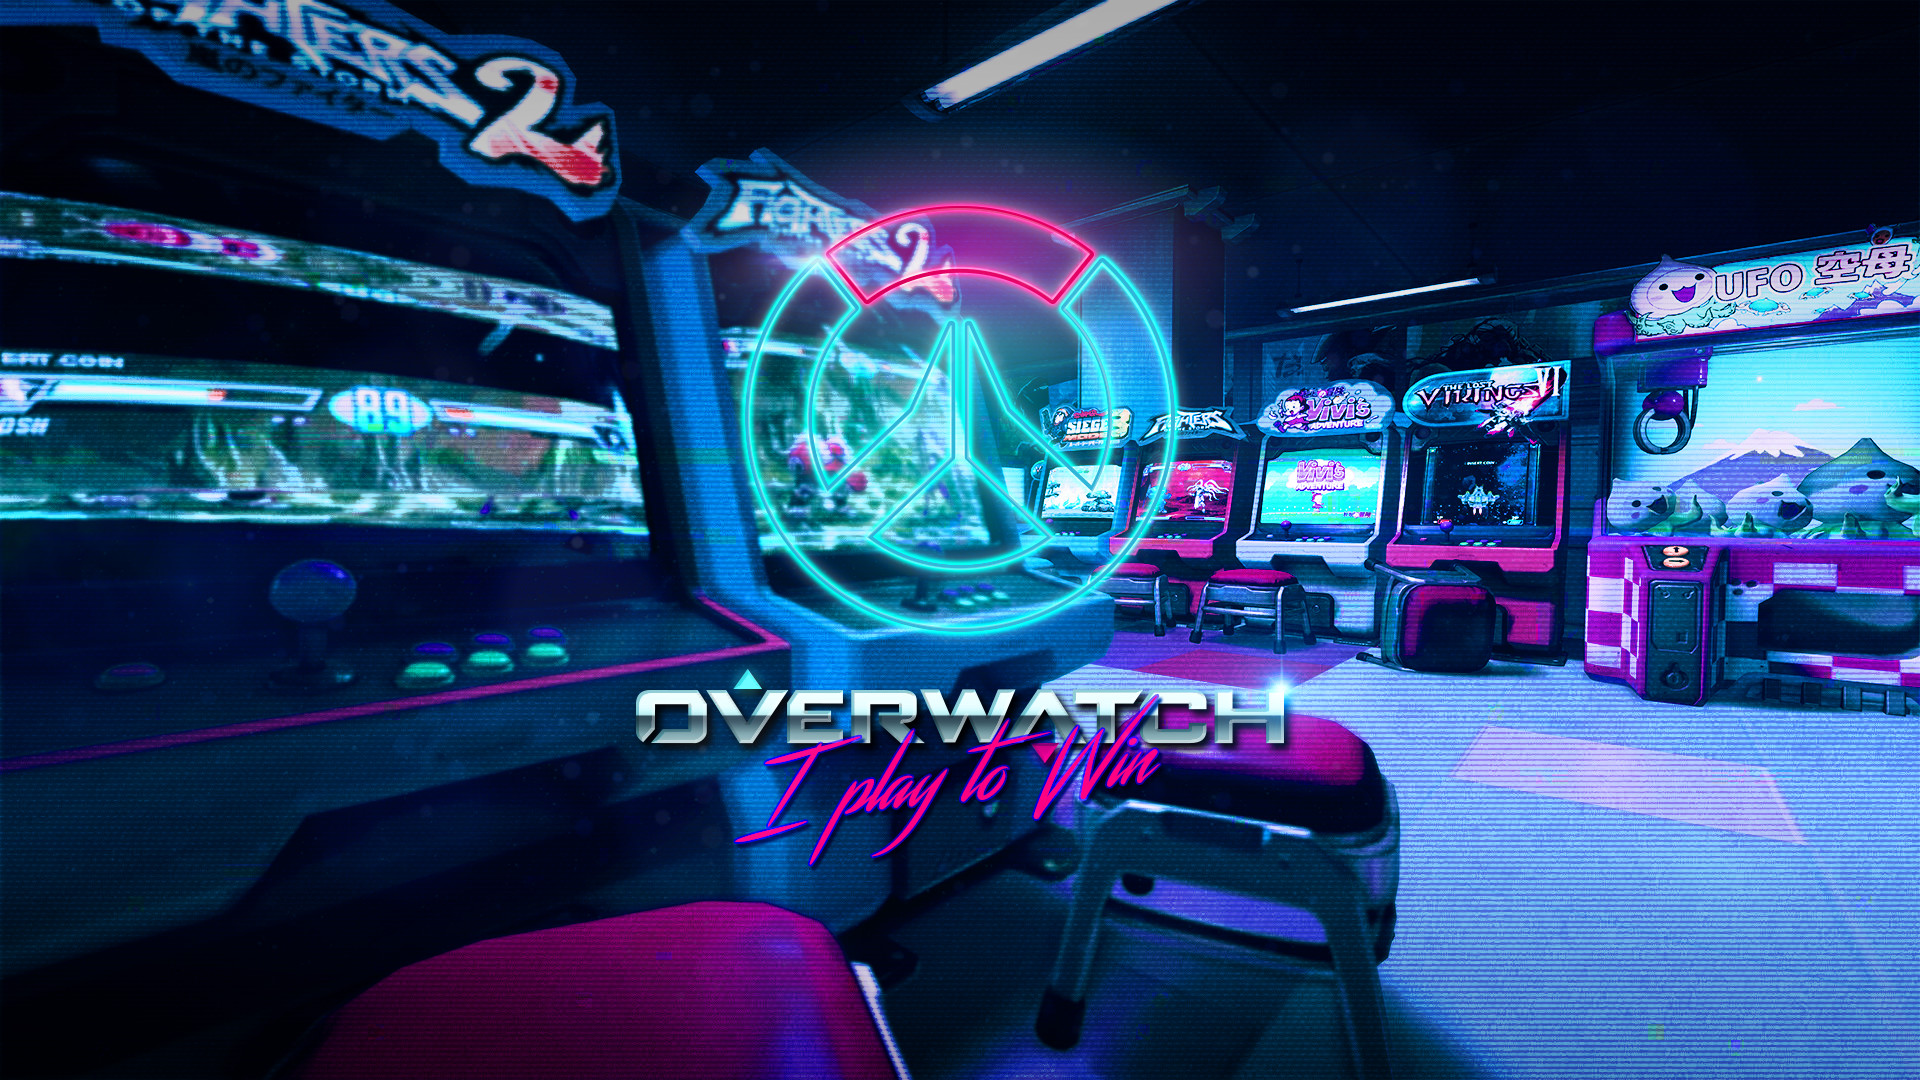 Res: 1920x1080, Overwatch synthwave retro something something kind of wallpaper yeah -  Album on Imgur